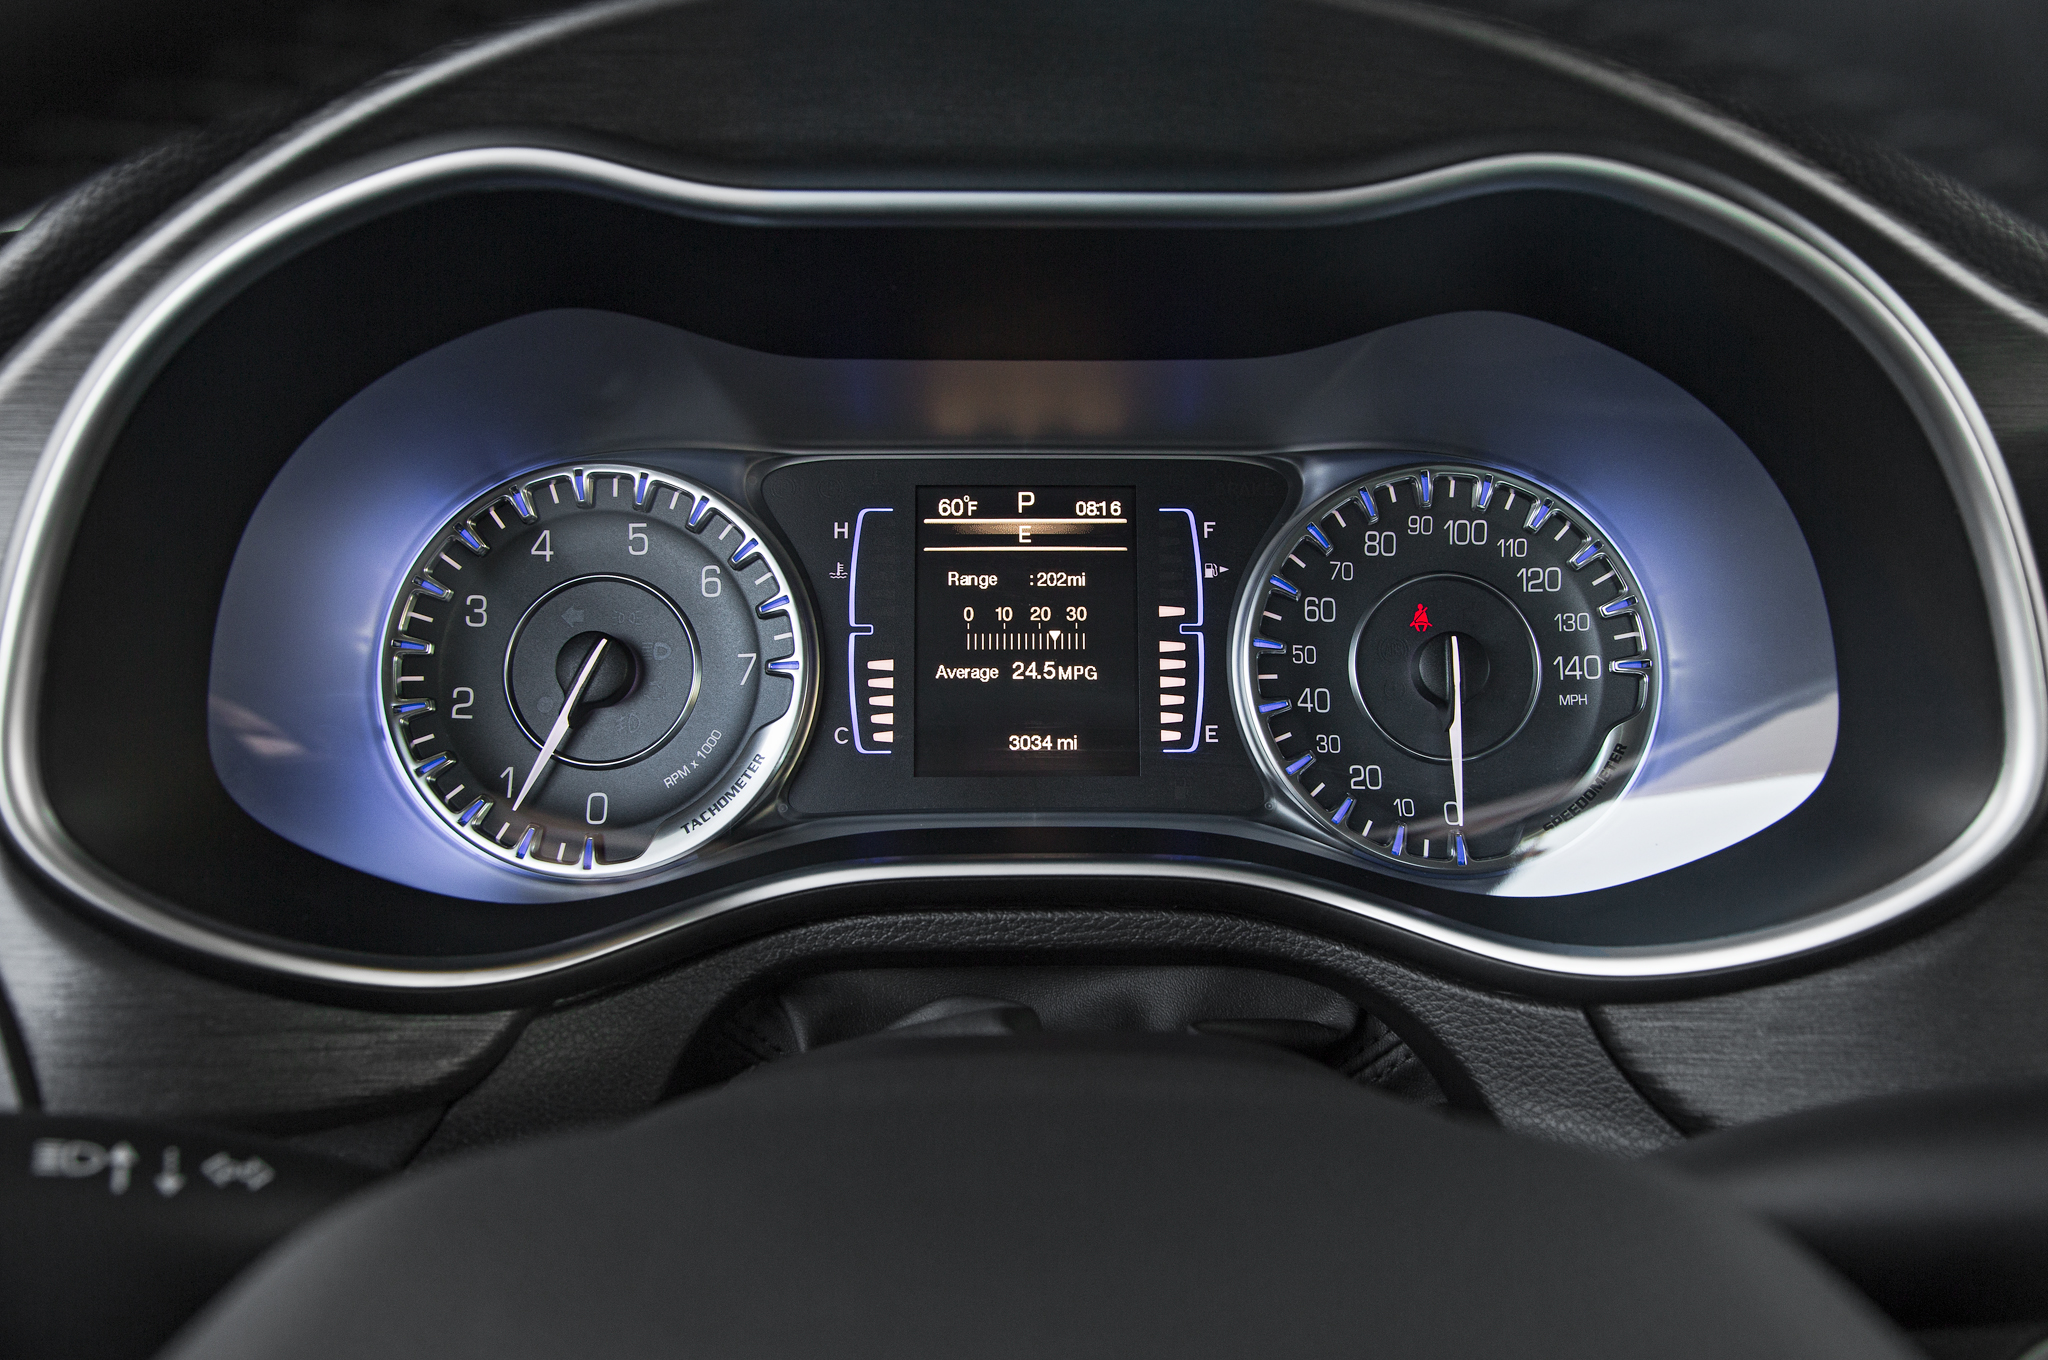 2015 Chrysler 200 Spedometer (Photo 11 of 11)